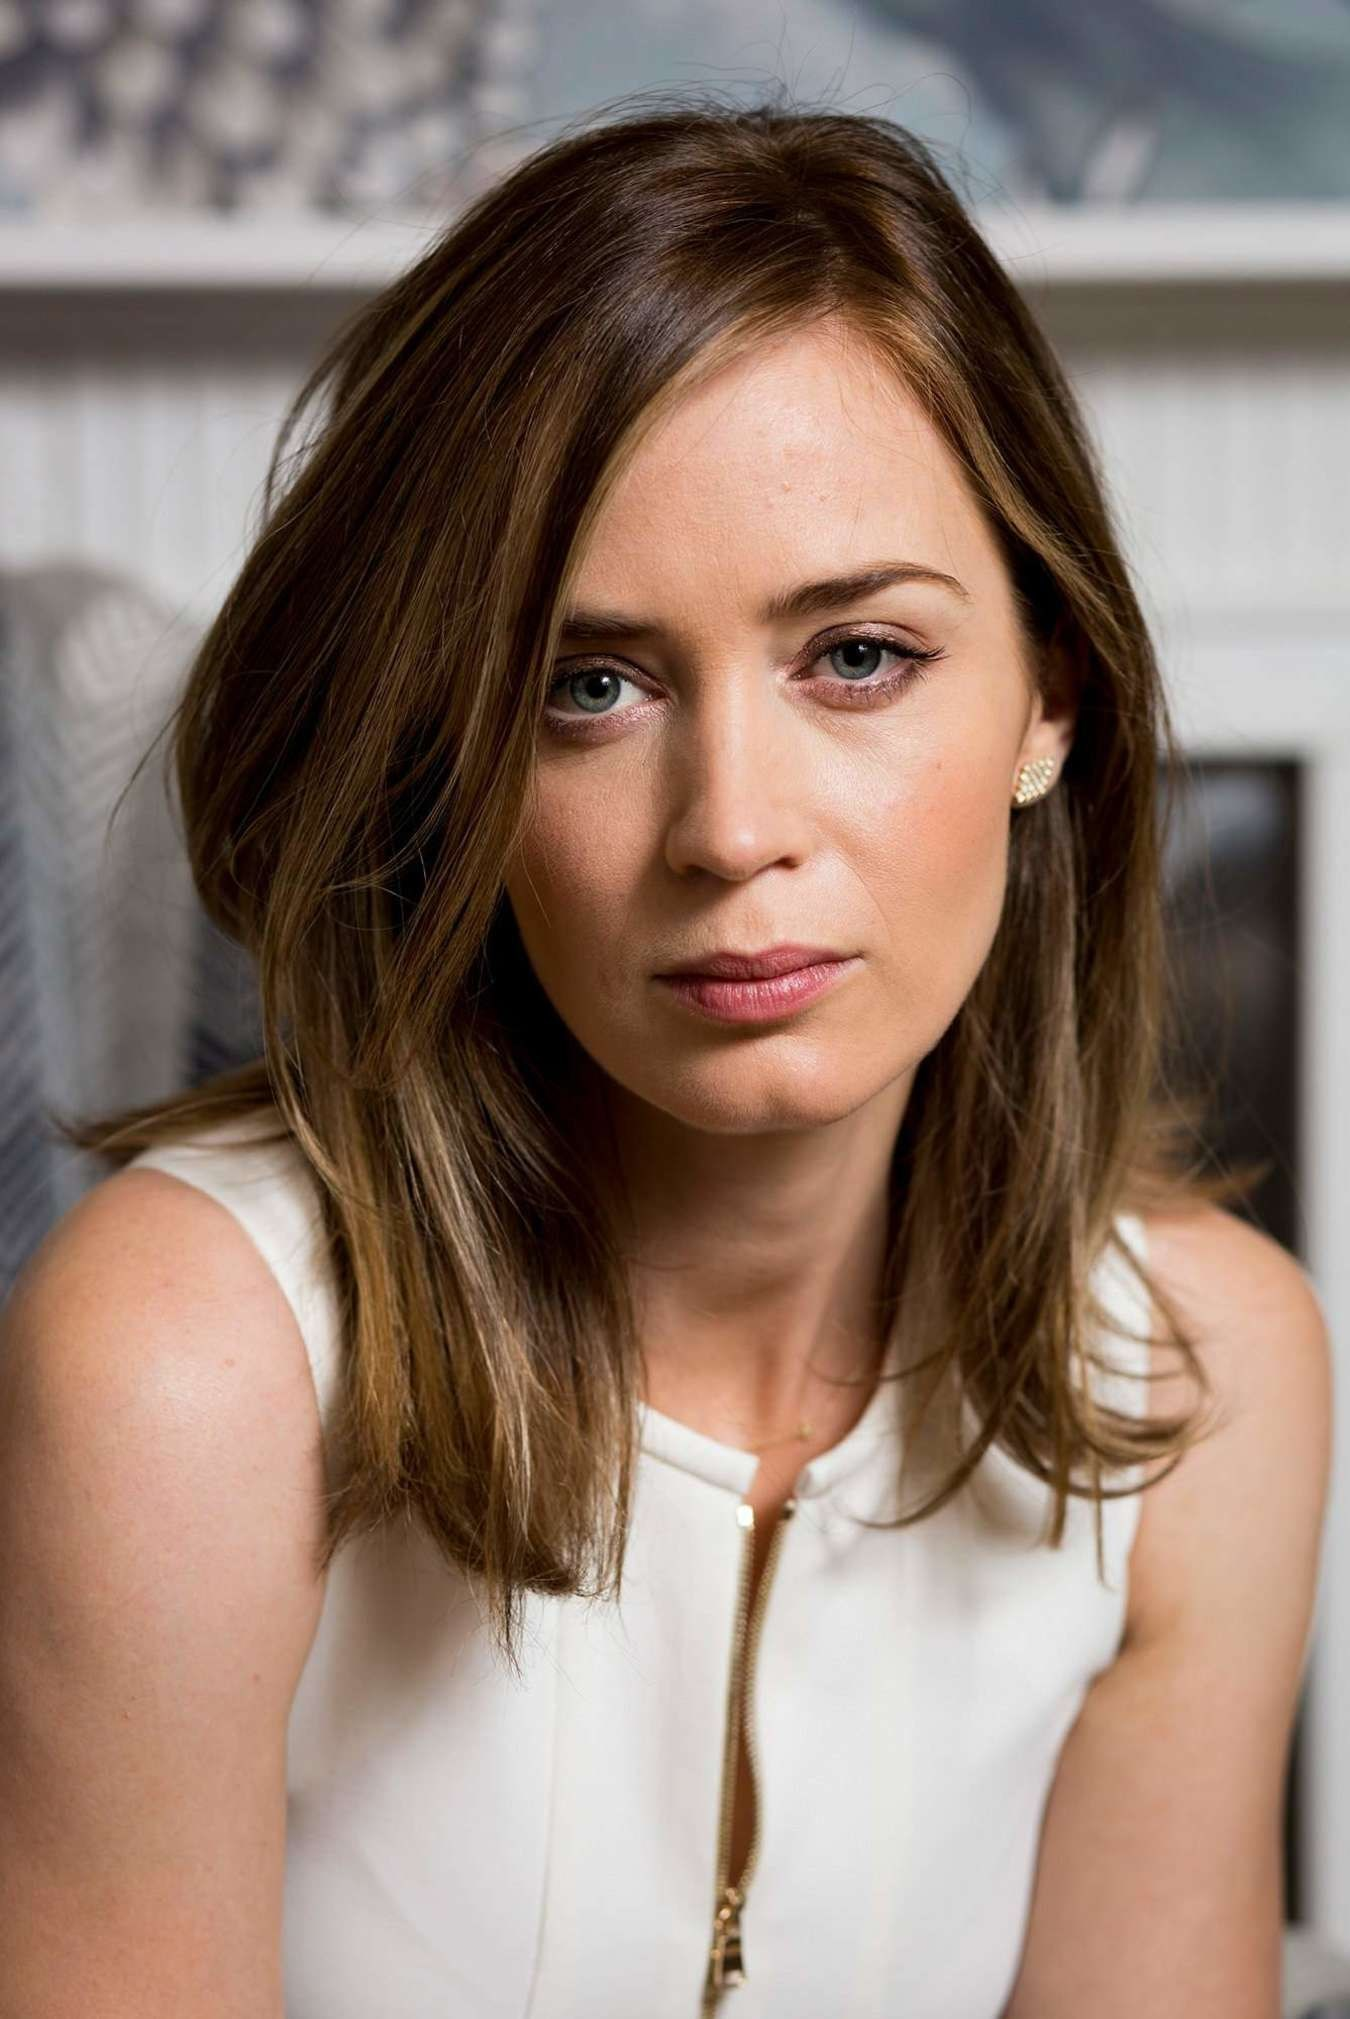 Emily Blunt | Known pe...